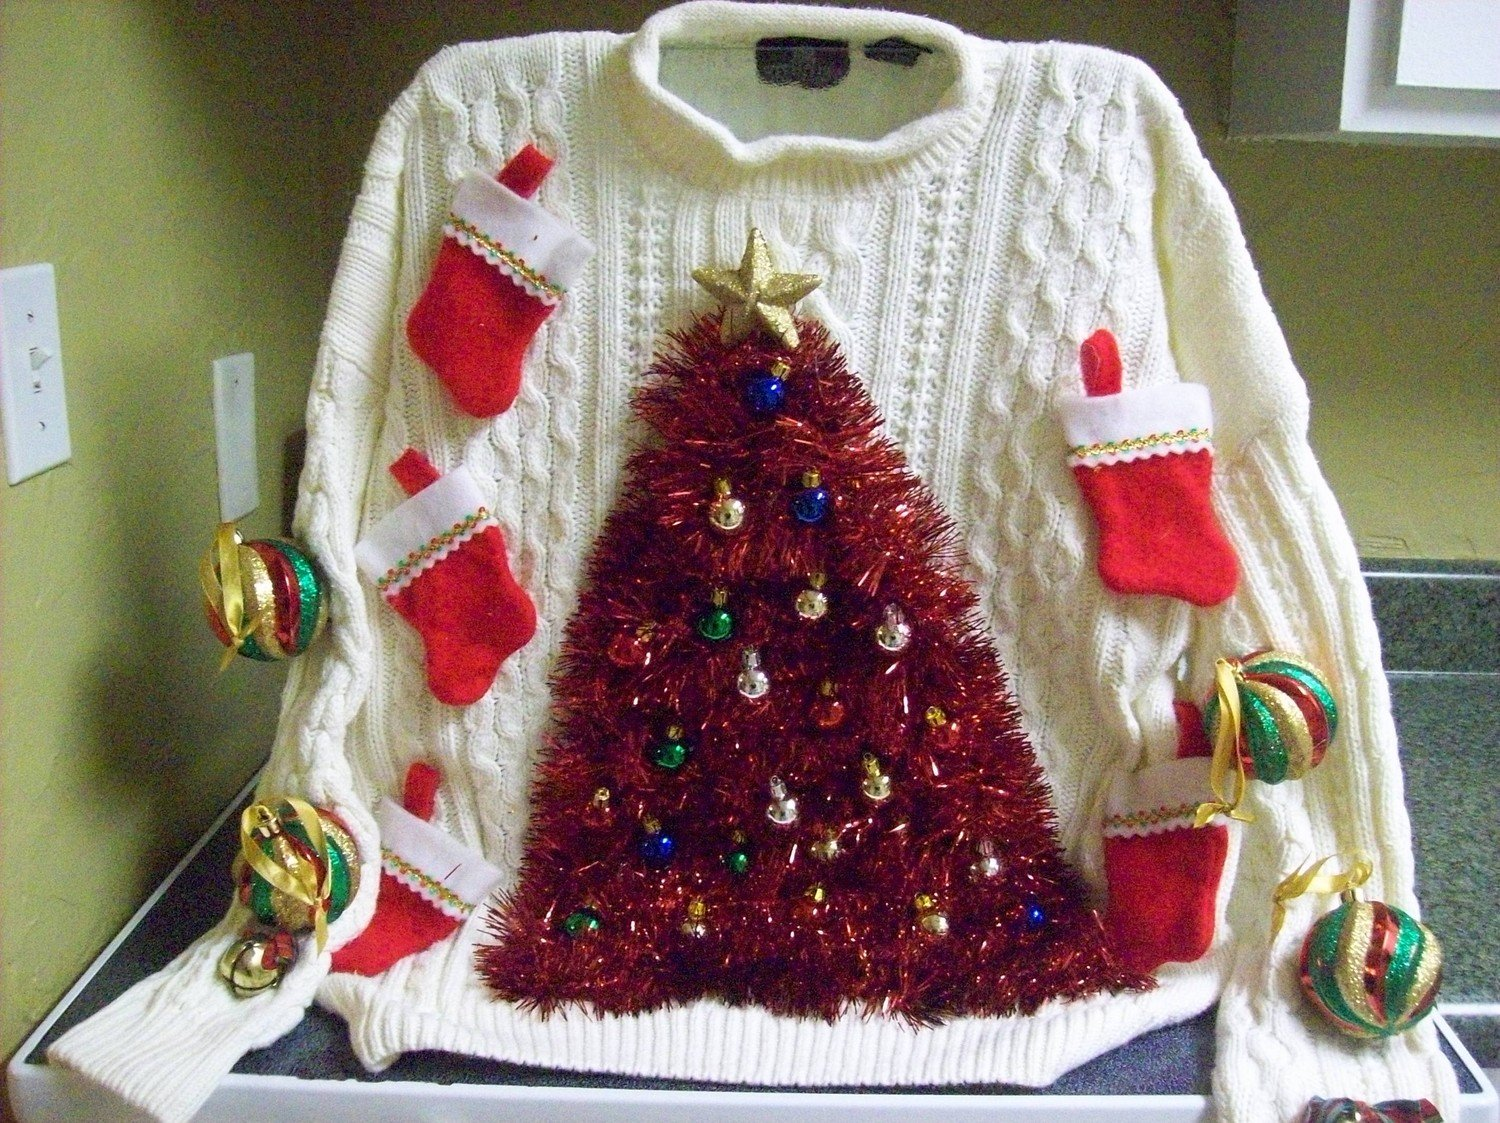 The Top Ten Ugliest Ugly Christmas Sweaters   Bridgette Raes Style cVeRAMP7